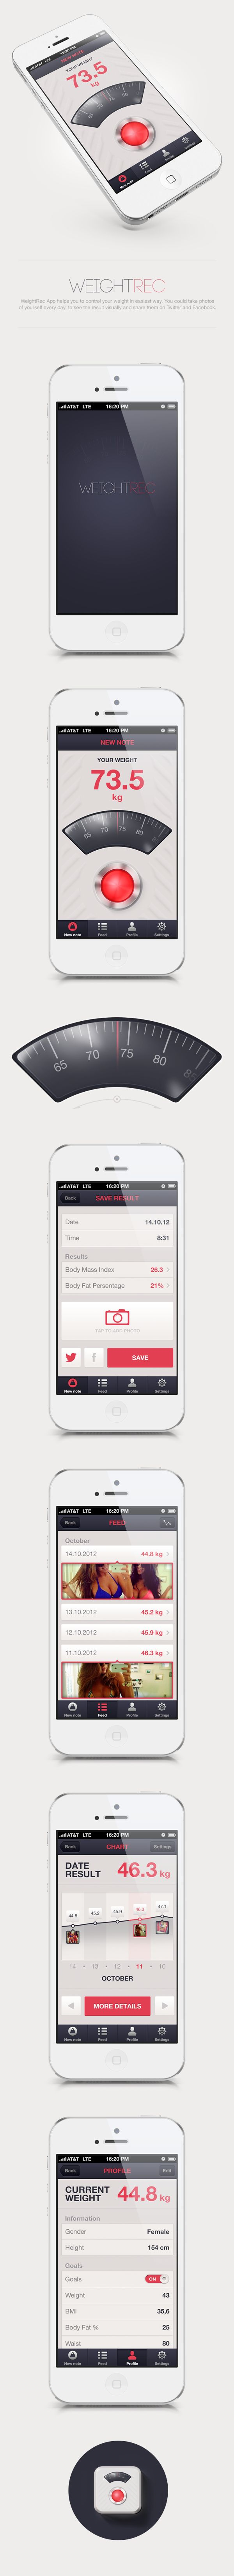 WeightRec App by BLASTAROCKS , via Behance